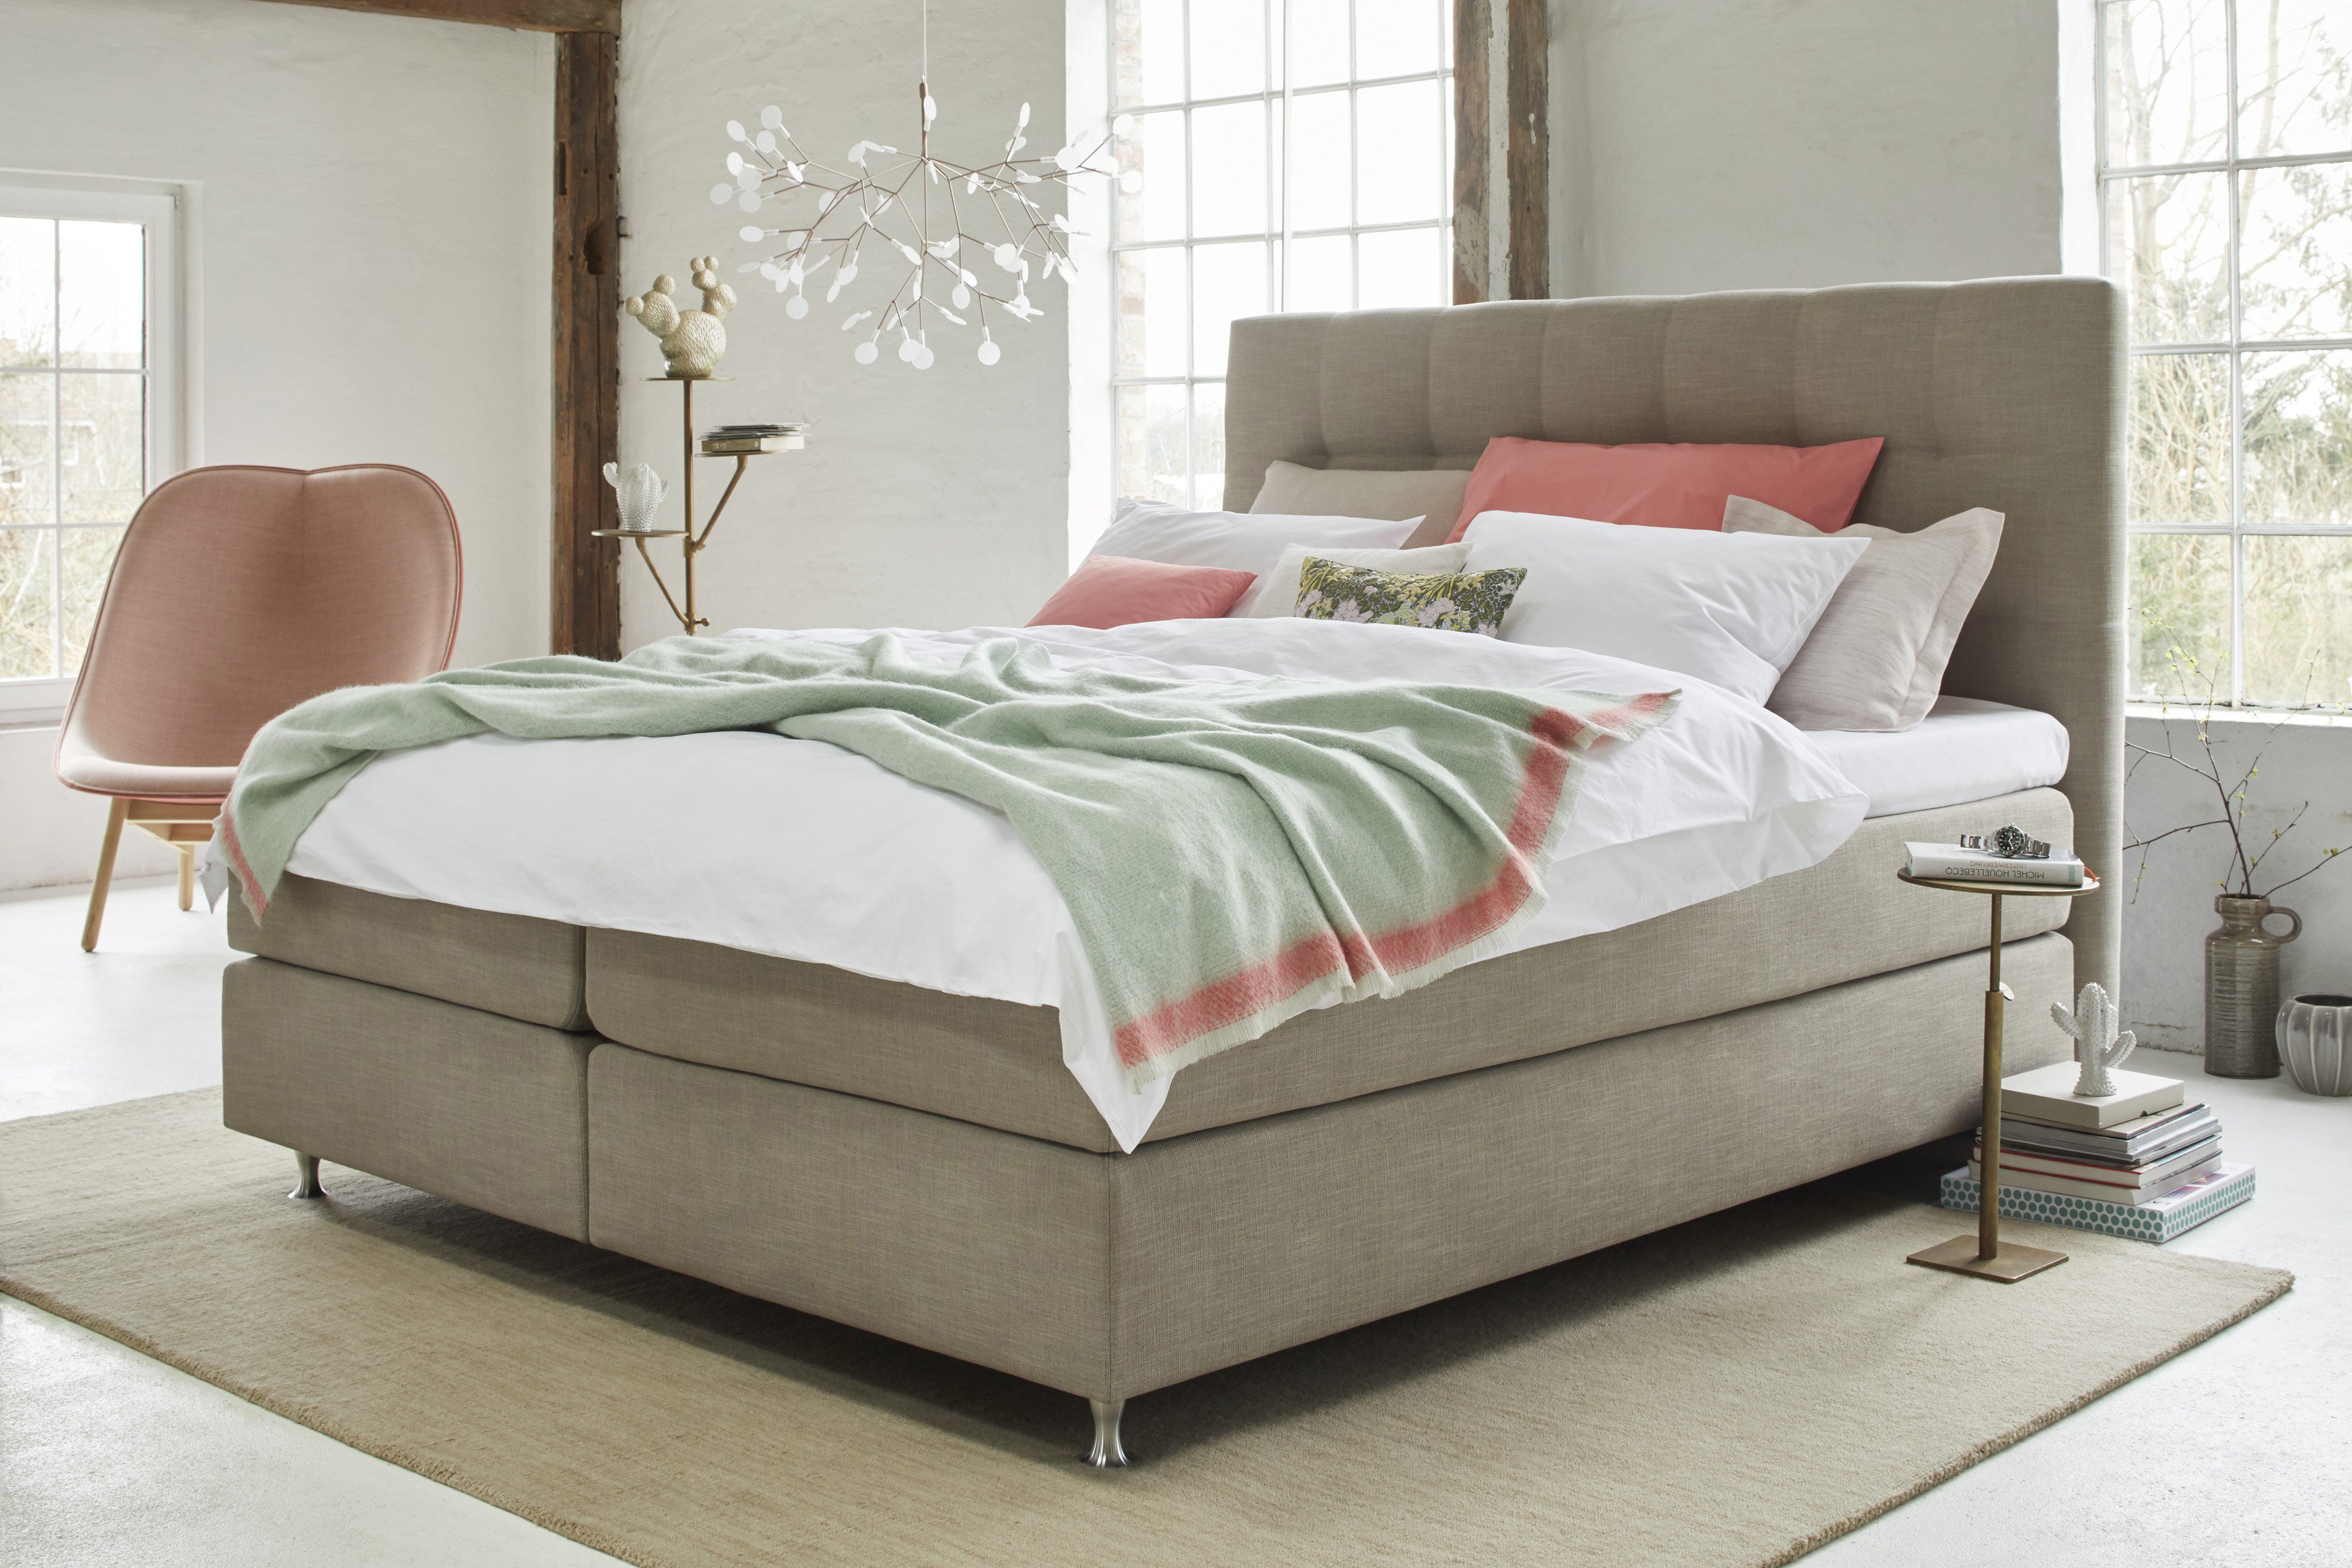 boxspringbett ayda von schlaraffia in sand m bel letz ihr online shop. Black Bedroom Furniture Sets. Home Design Ideas